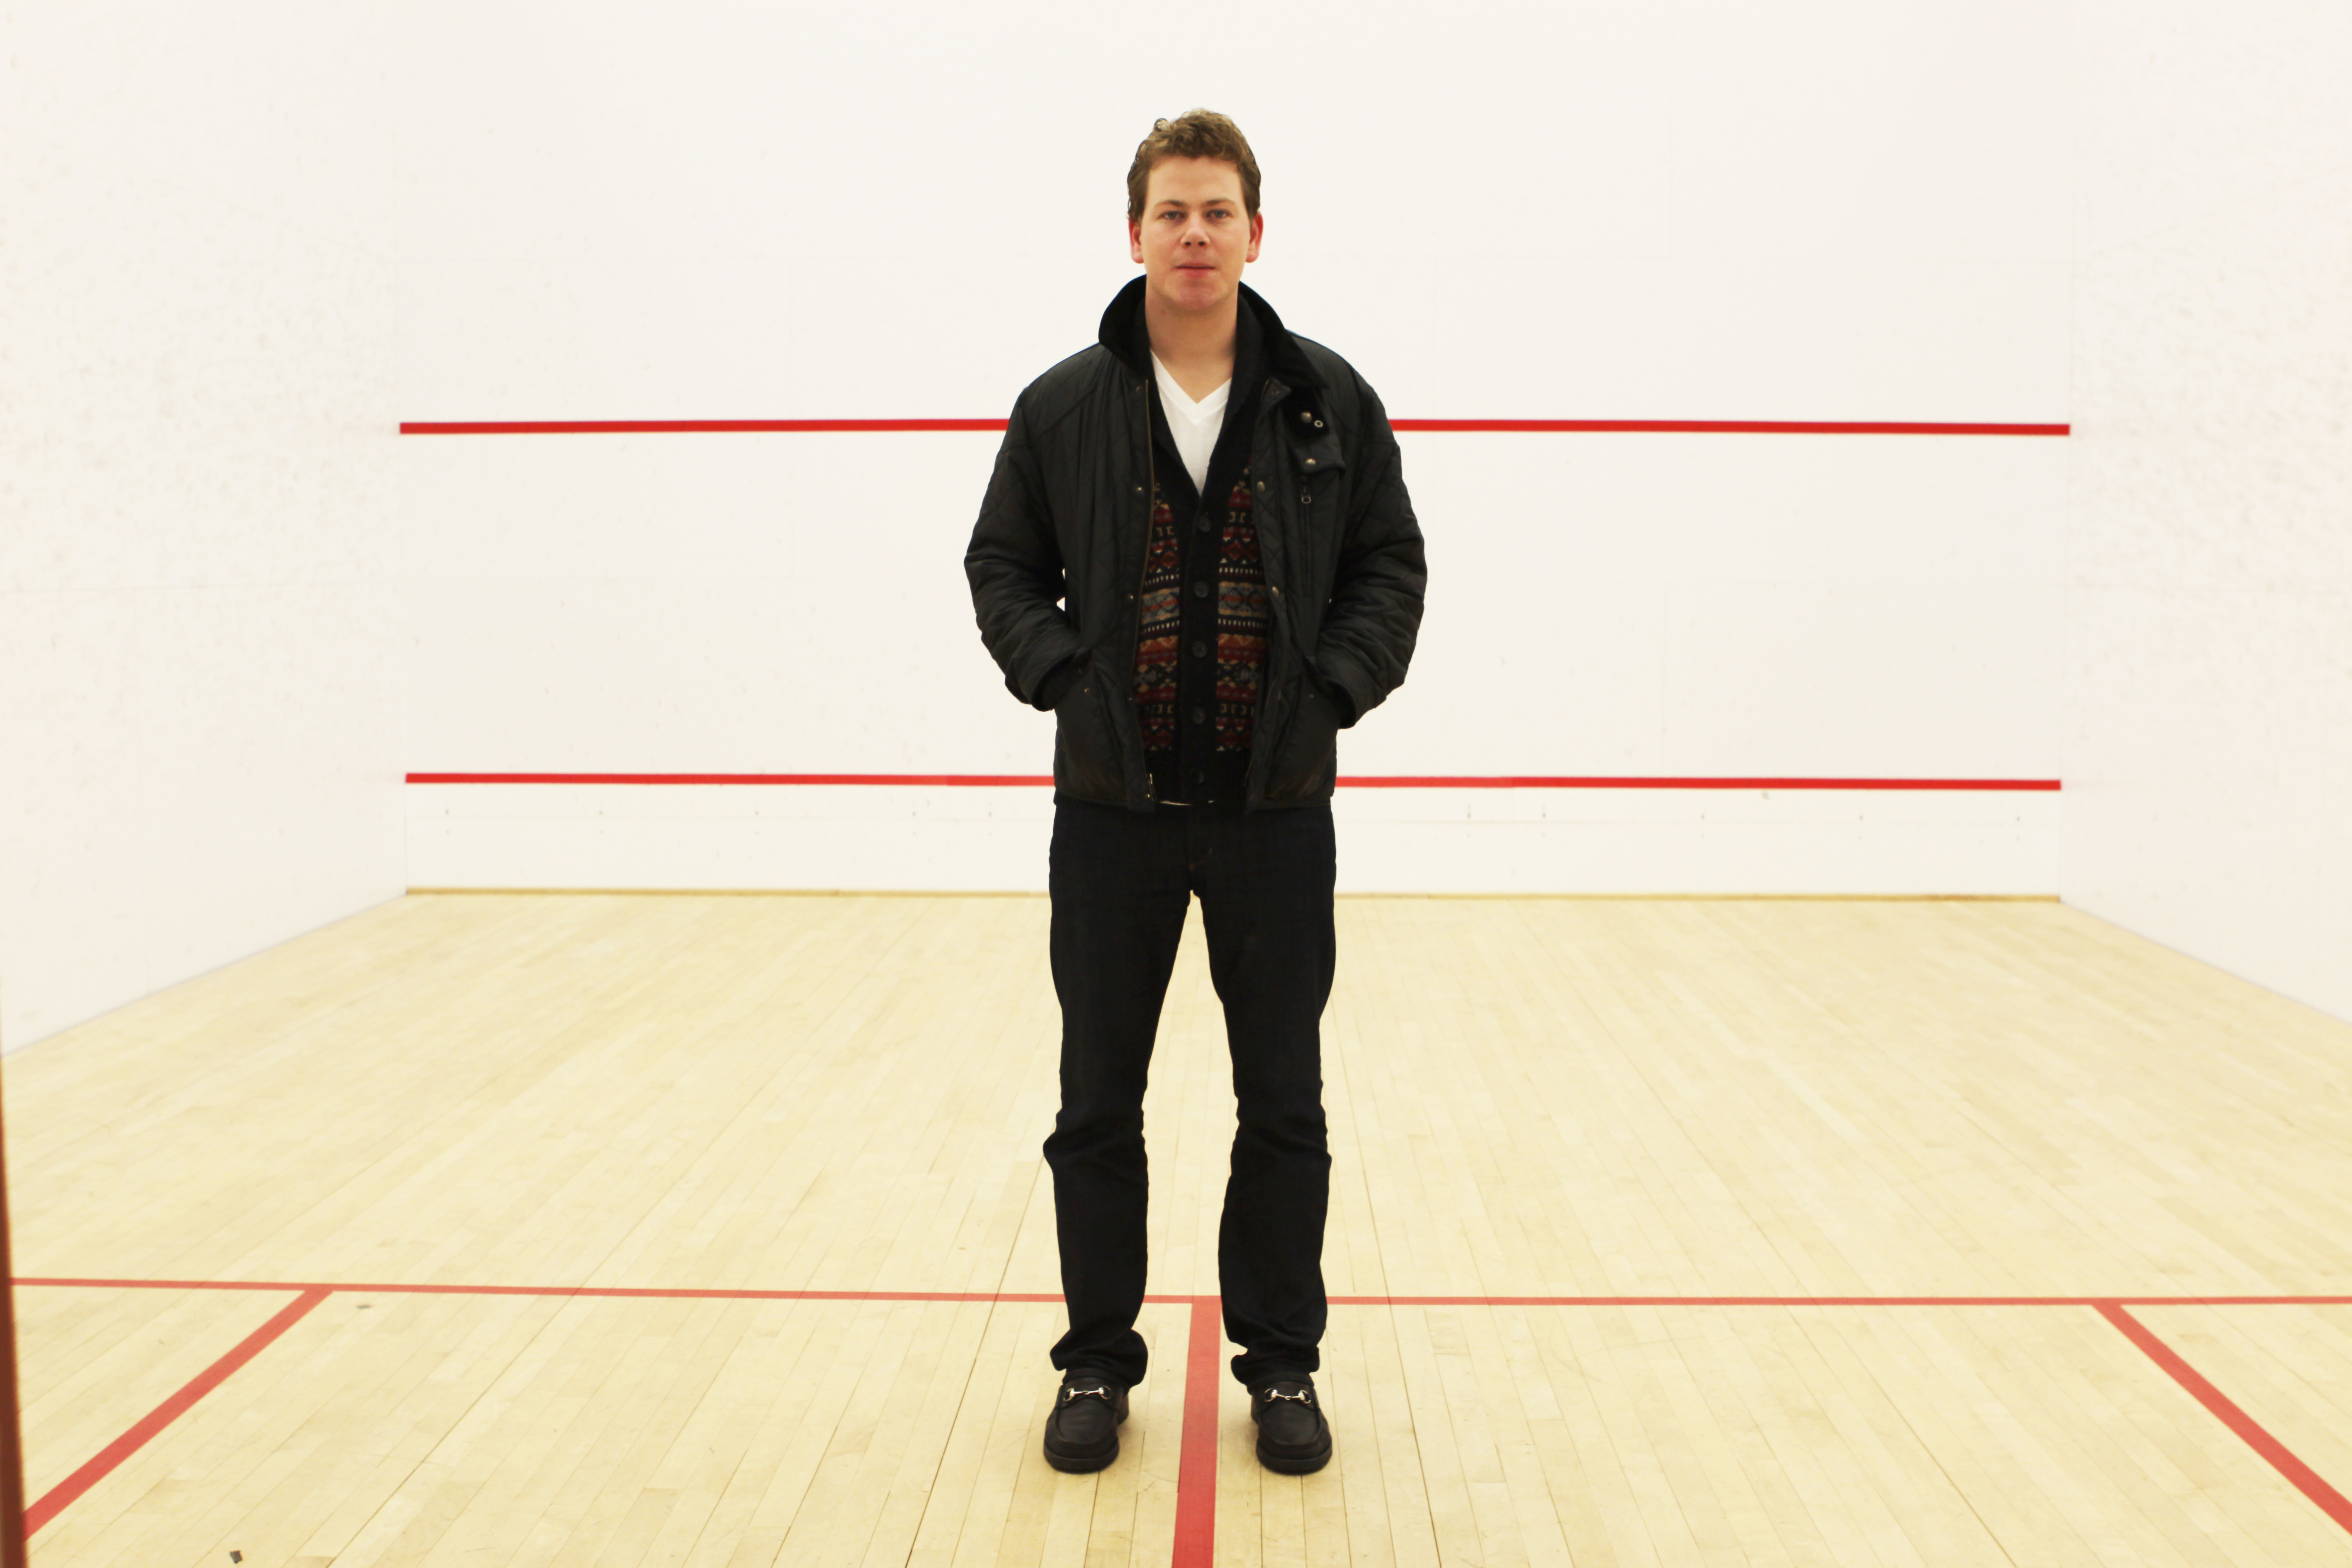 O'Brien first started playing squash at Roycemore Prep School in Chicago.